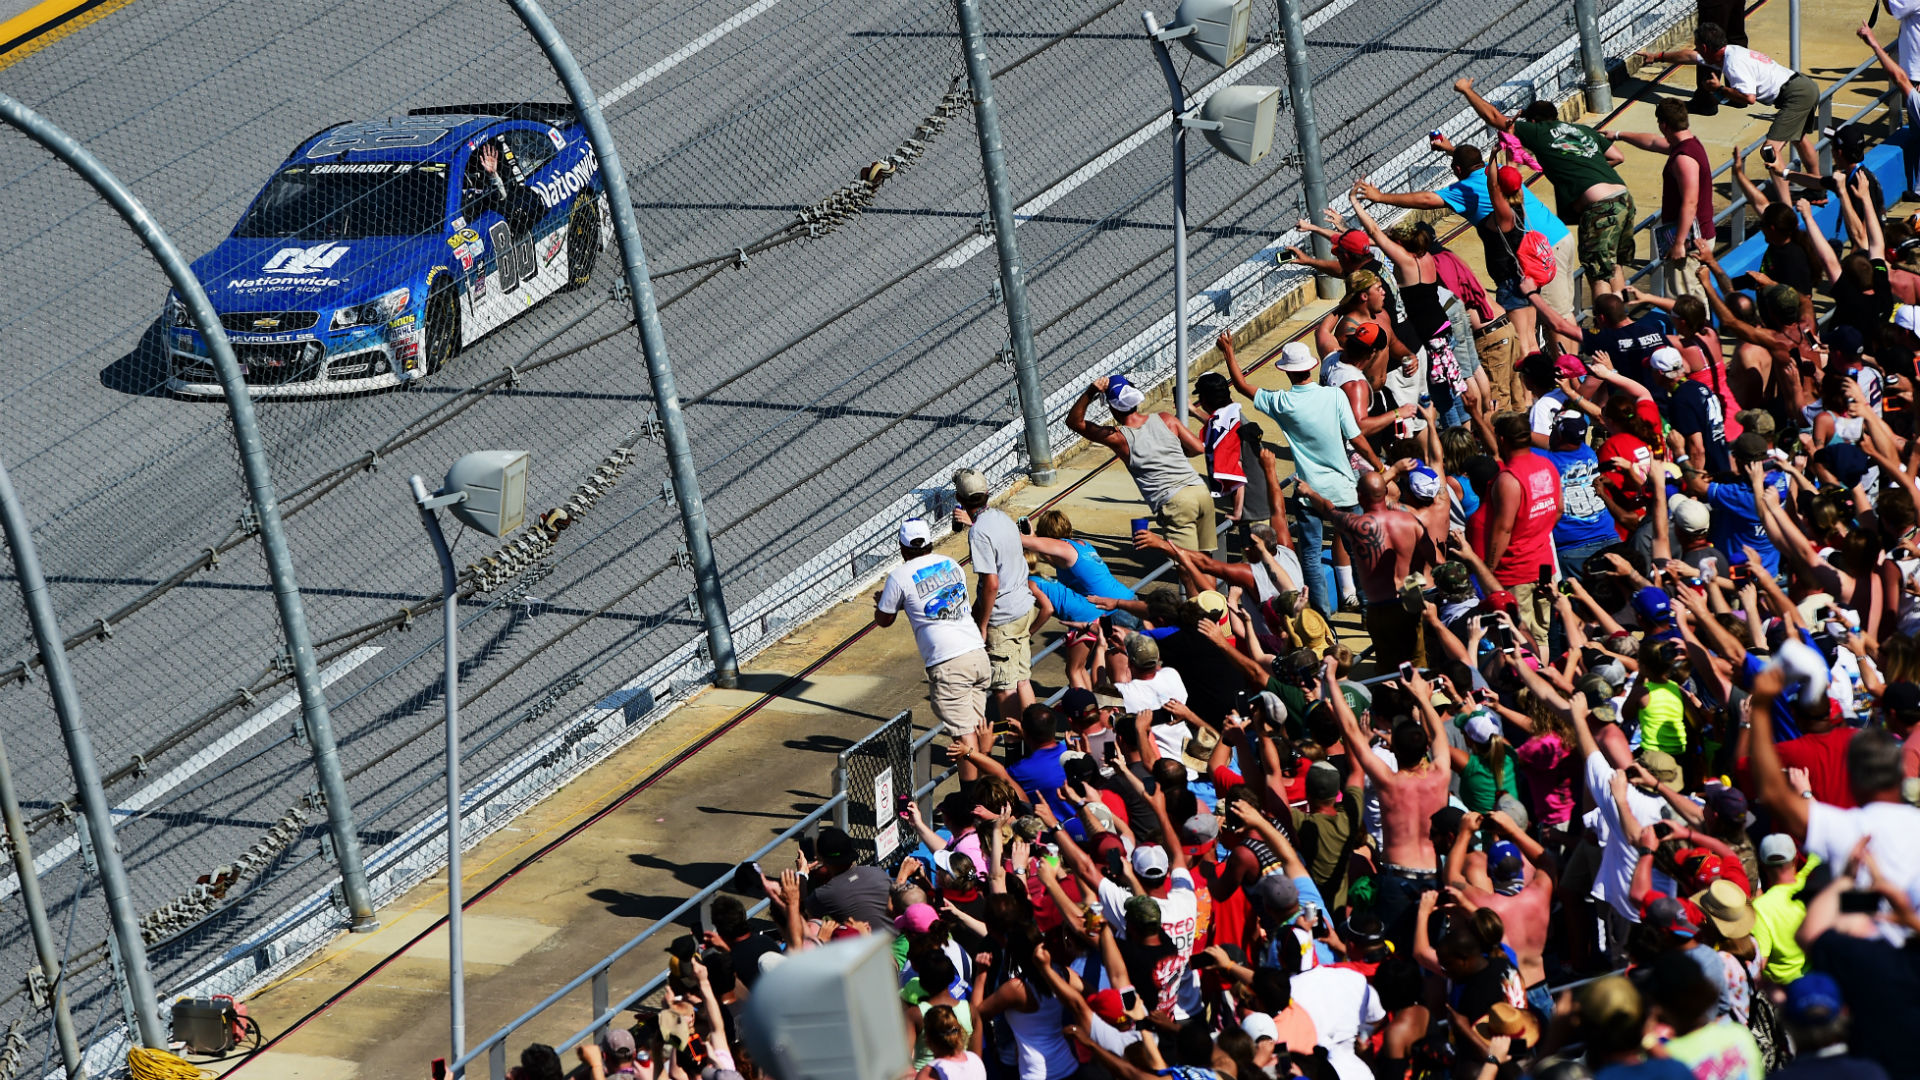 Dale Earnhardt Jr. wins at Talladega